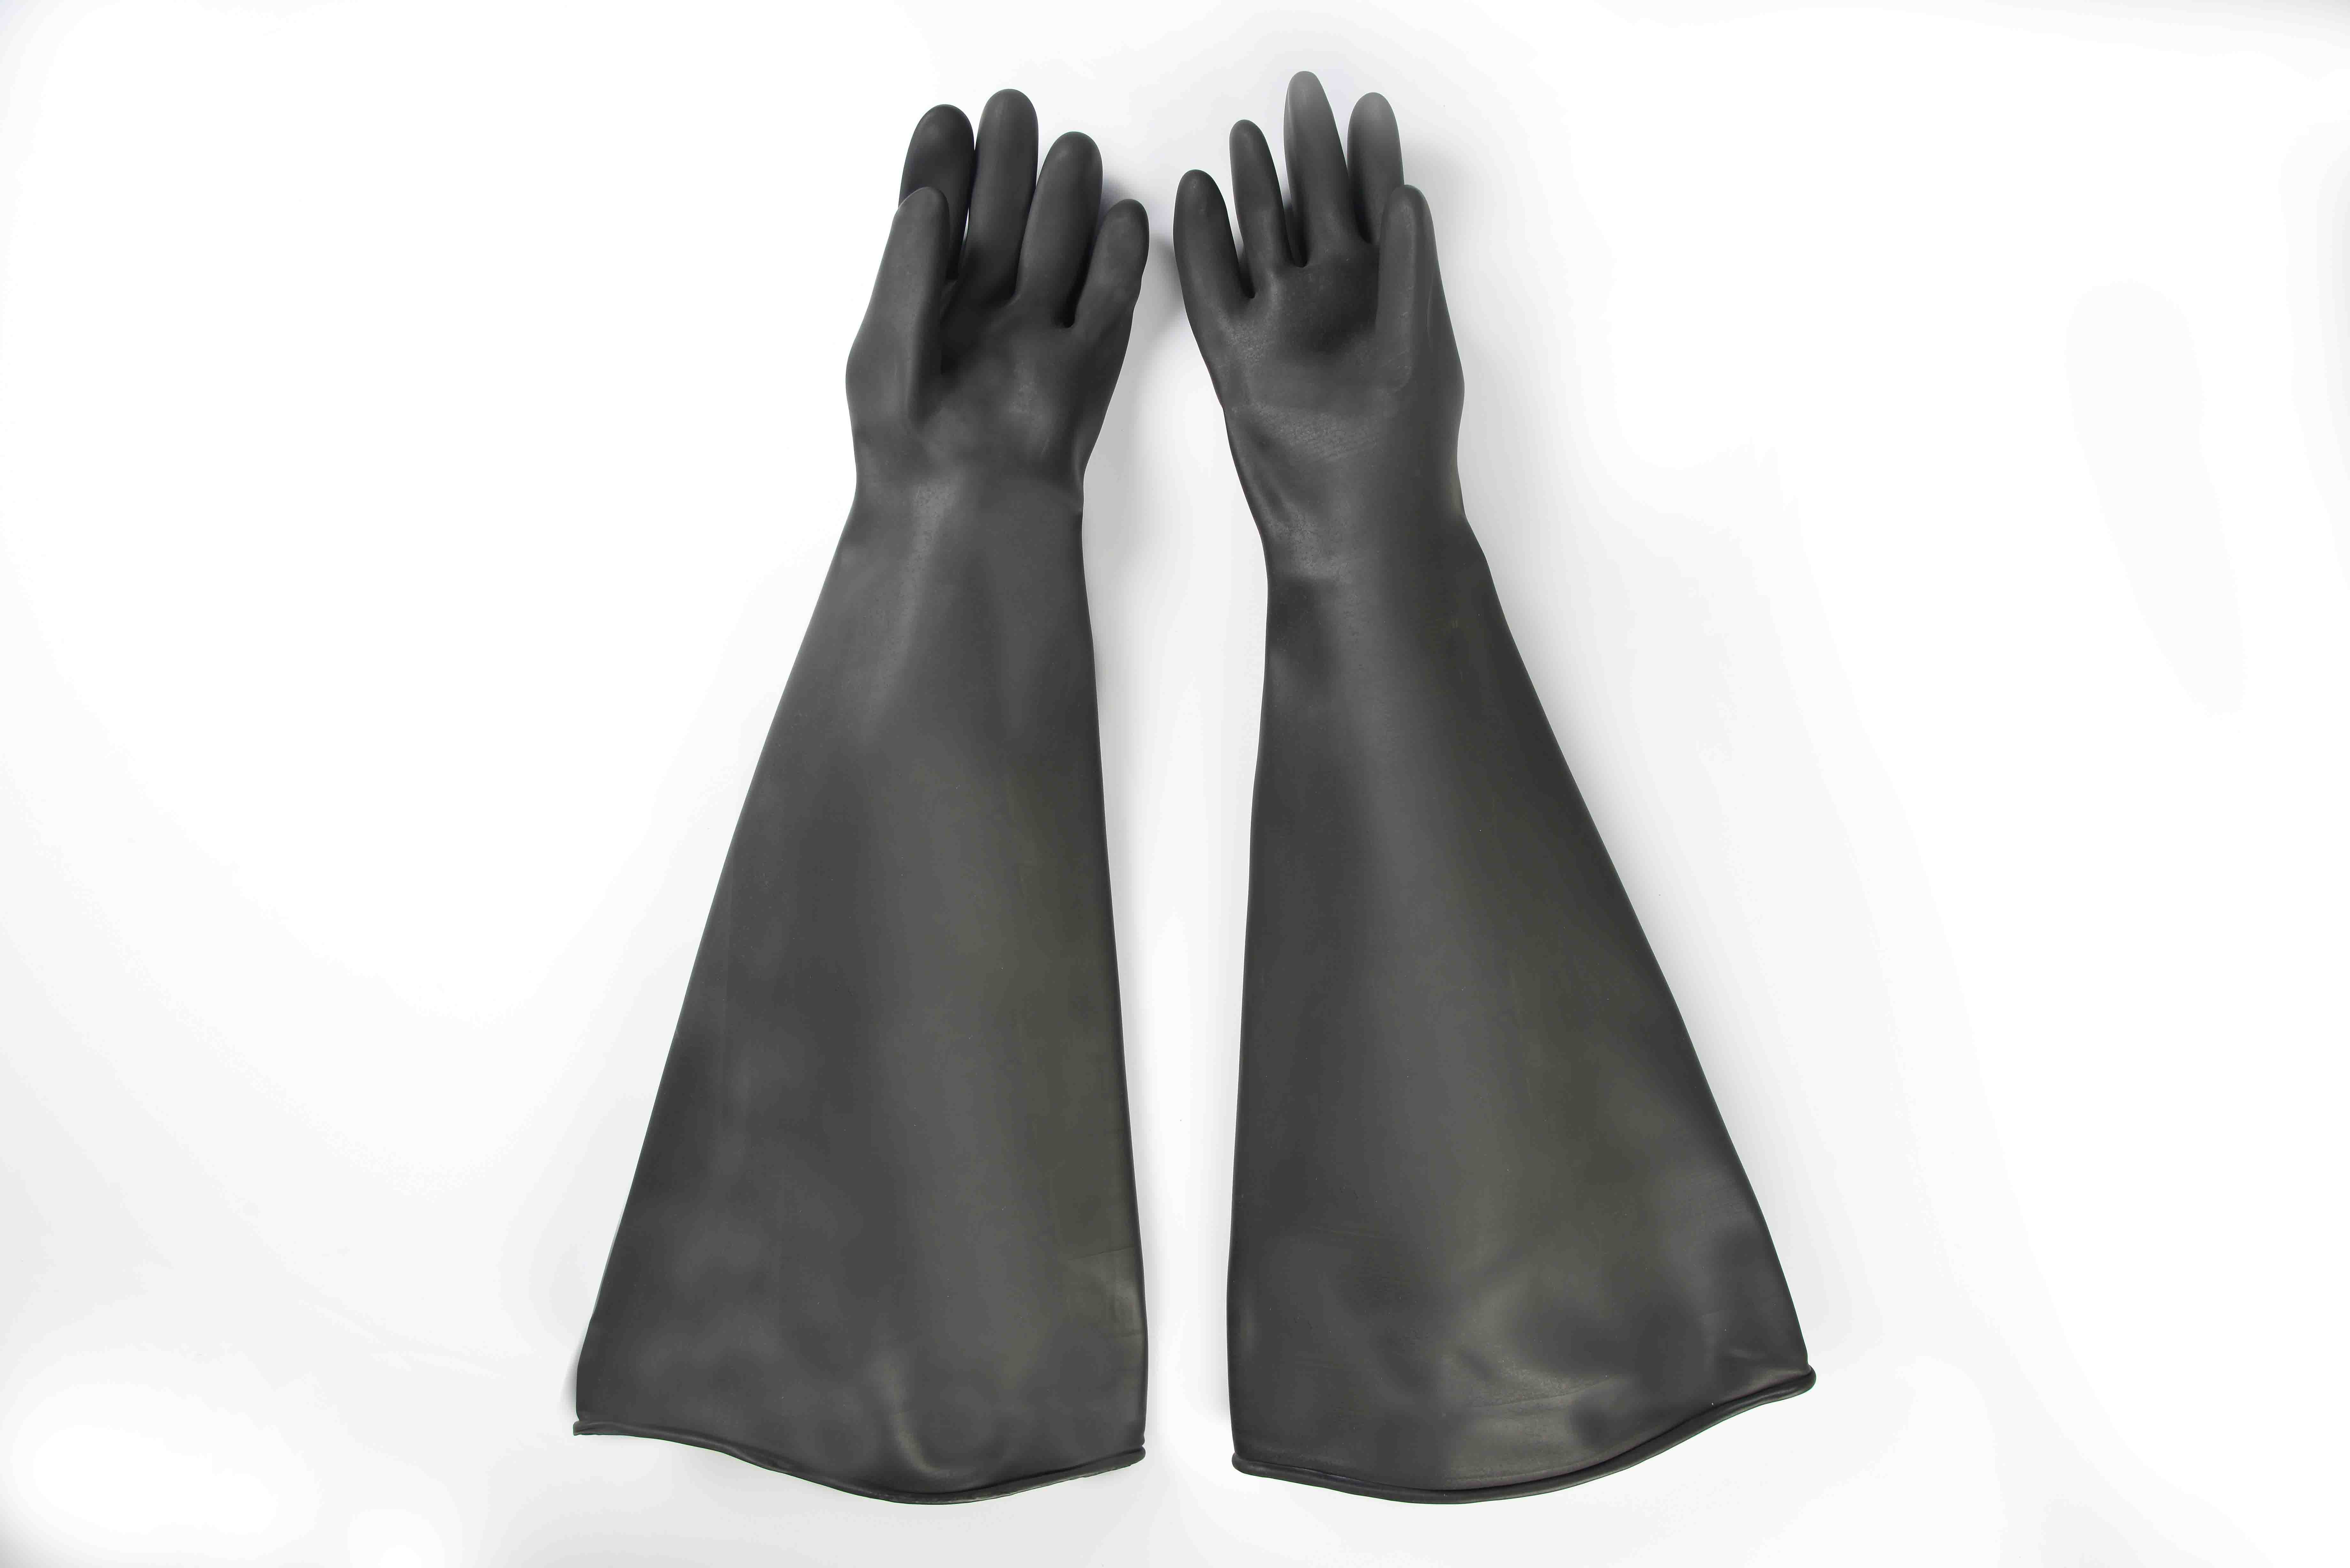 Hot sale reasonable price 26″ Industrial rubber glove-smooth finish Switzerland Supplier